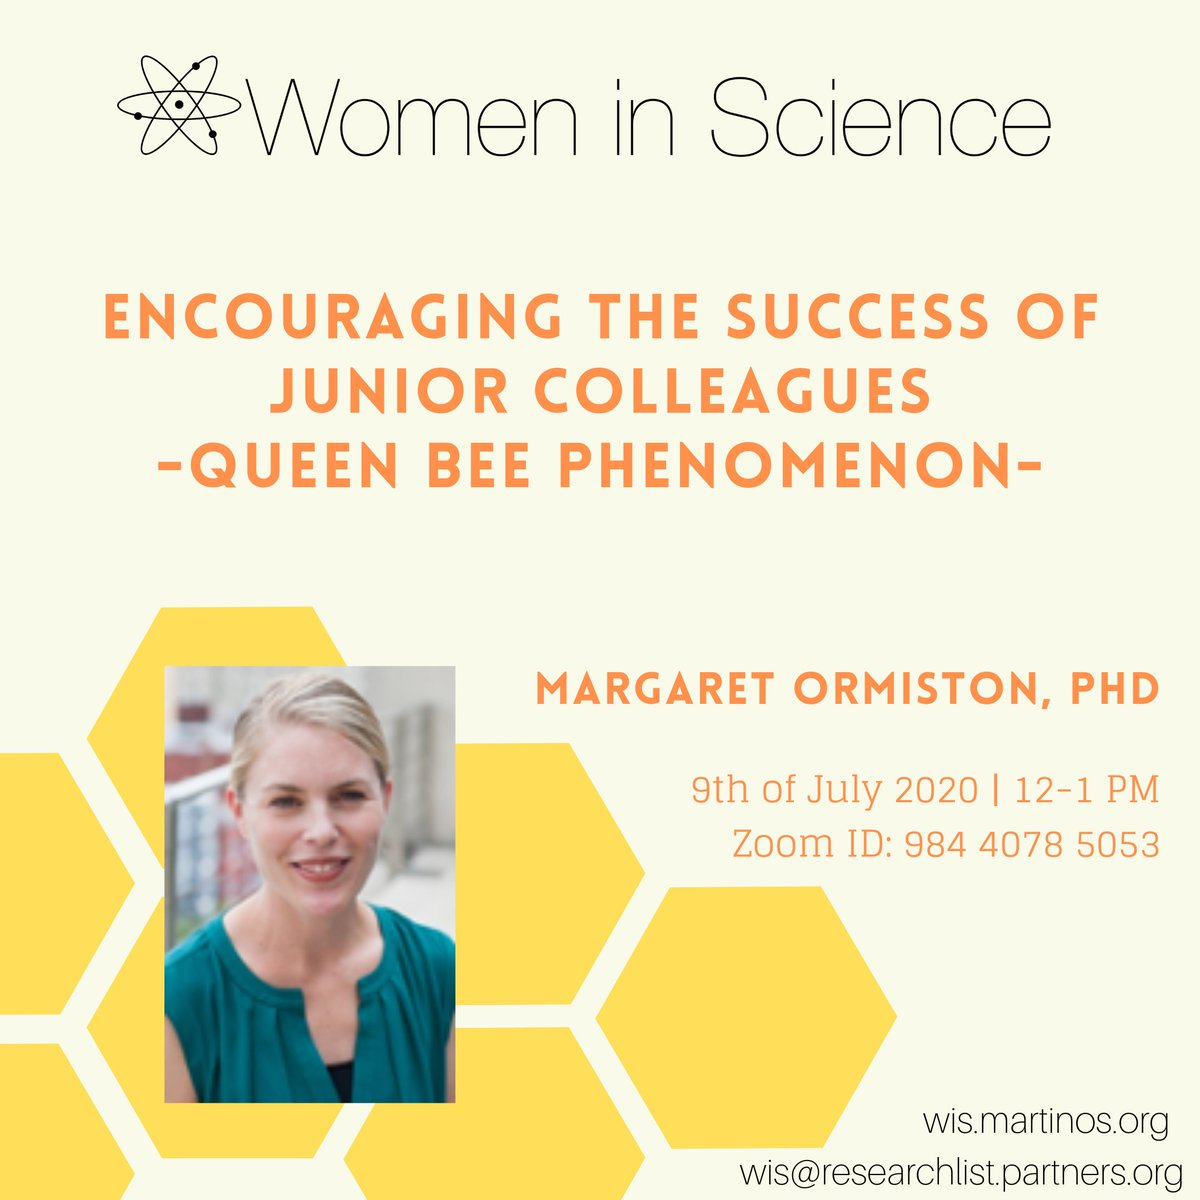 Please RT! @WiS_MGHMartinos invites you to join us & the wonderful Dr. Ormiston from @gwtweets on 7/9 at 12pm EST to learn about #leadership & how to support each other to achieve success.  @MGHmapp @MGHMartinos @HecDJC @GWISci @storiesofwin @MGH_RI @NeuroBoricuas @HarvardHBS https://t.co/vk2cisV7kW